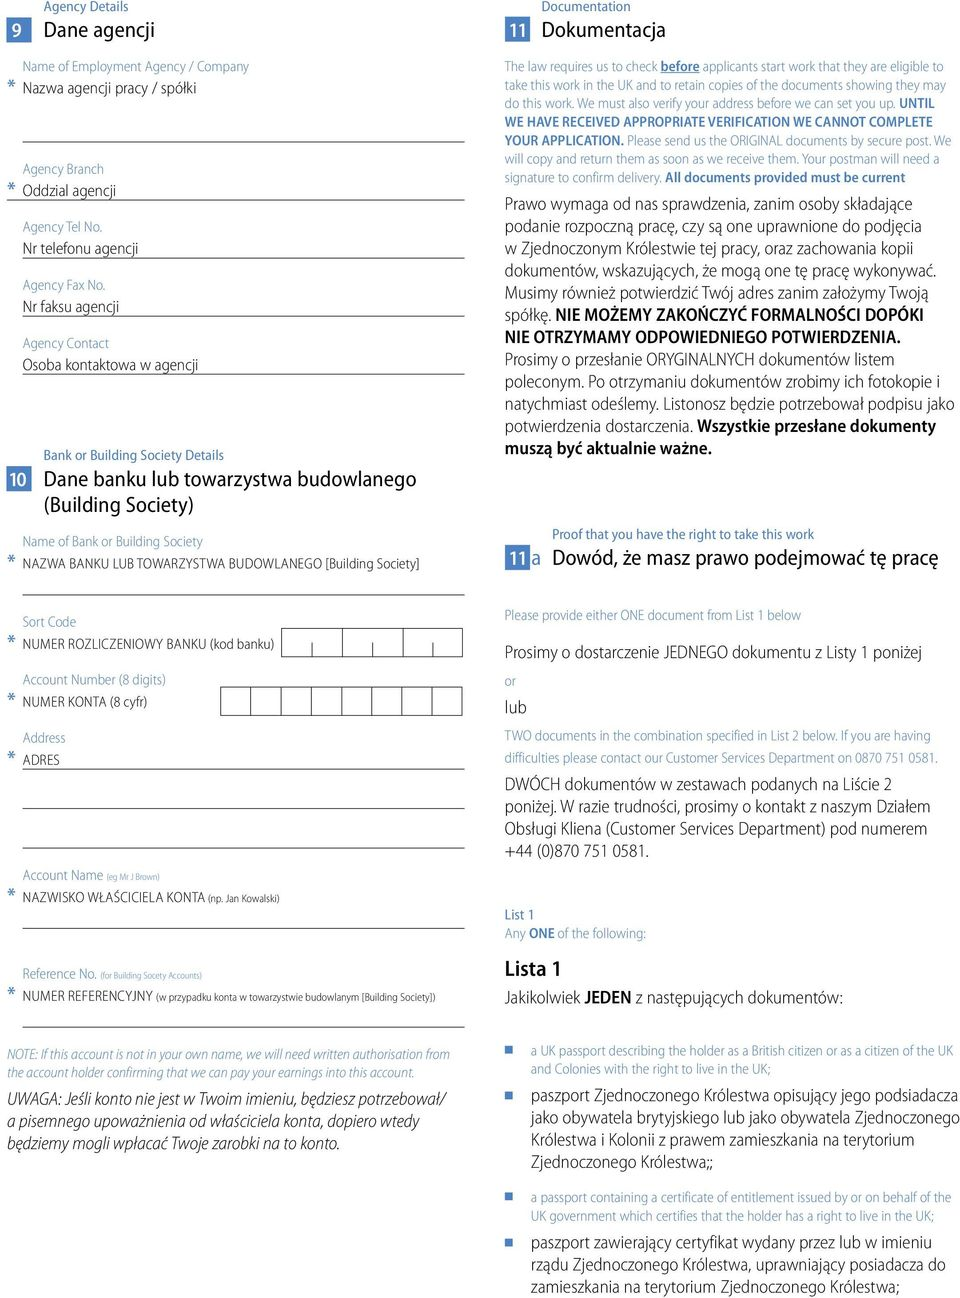 lub towarzystwa budowlanego [Building Society] Documentation 11 Dokumentacja The law requires us to check before applicants start work that they are eligible to take this work in the UK and to retain